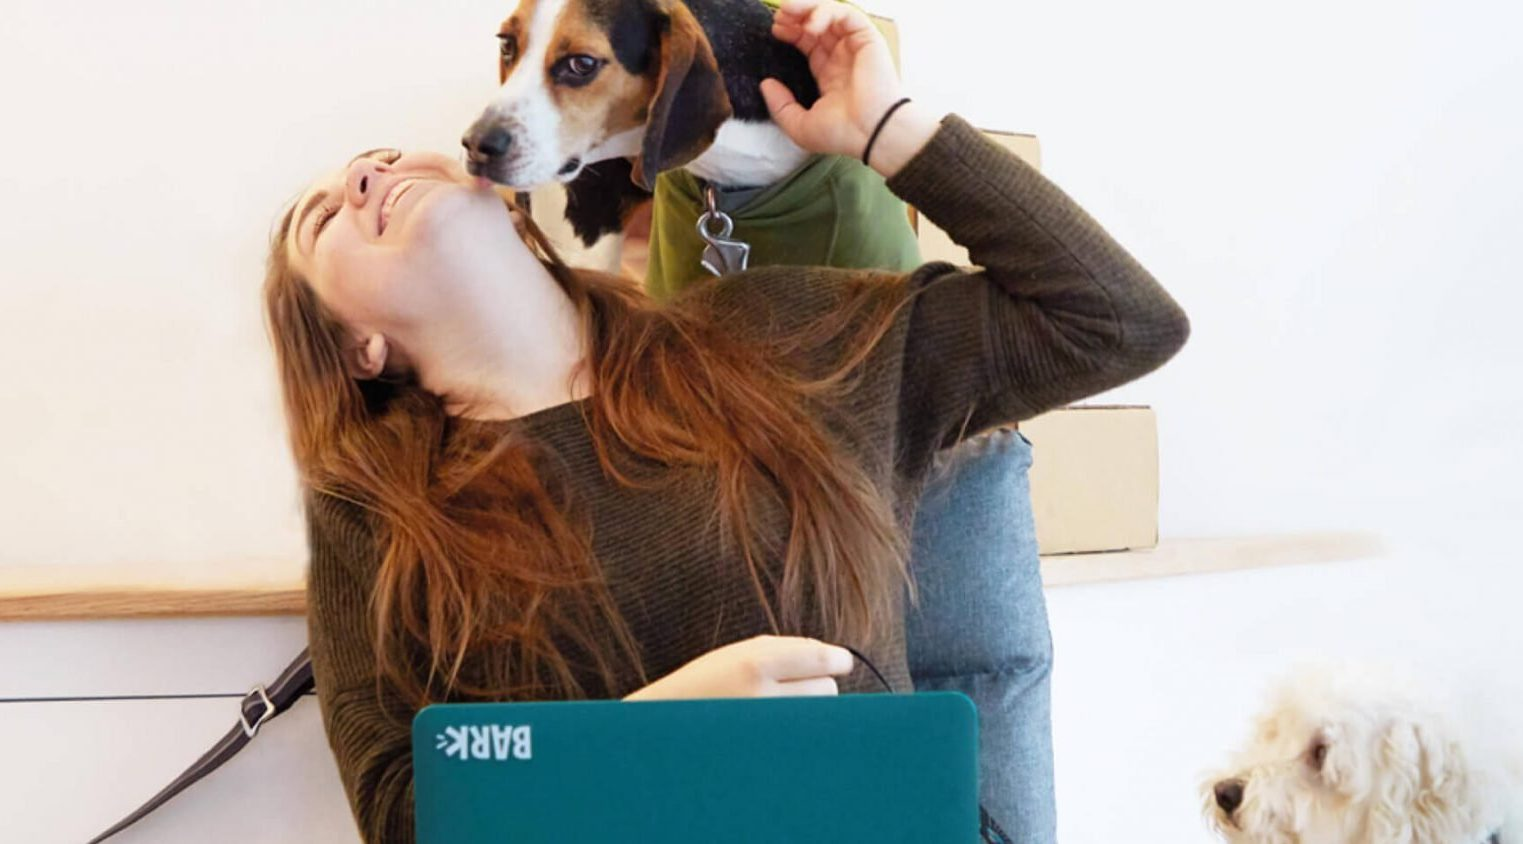 image of a dog mom getting kisses from her dog after giving her dog a Bark Box.